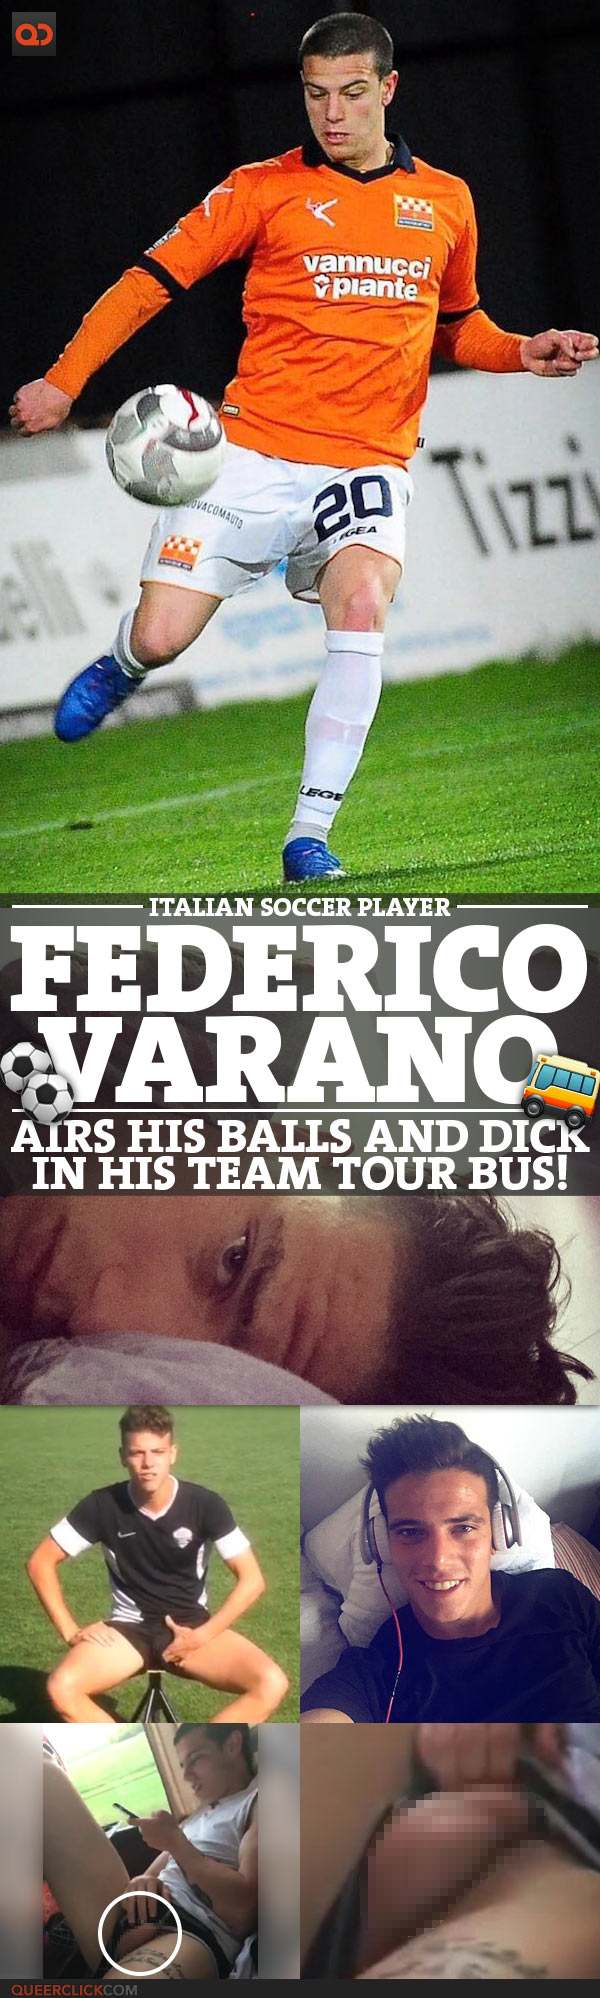 Federico Varano, Italian Soccer Player, Airs His Balls And Dick In His Team Tour Bus!